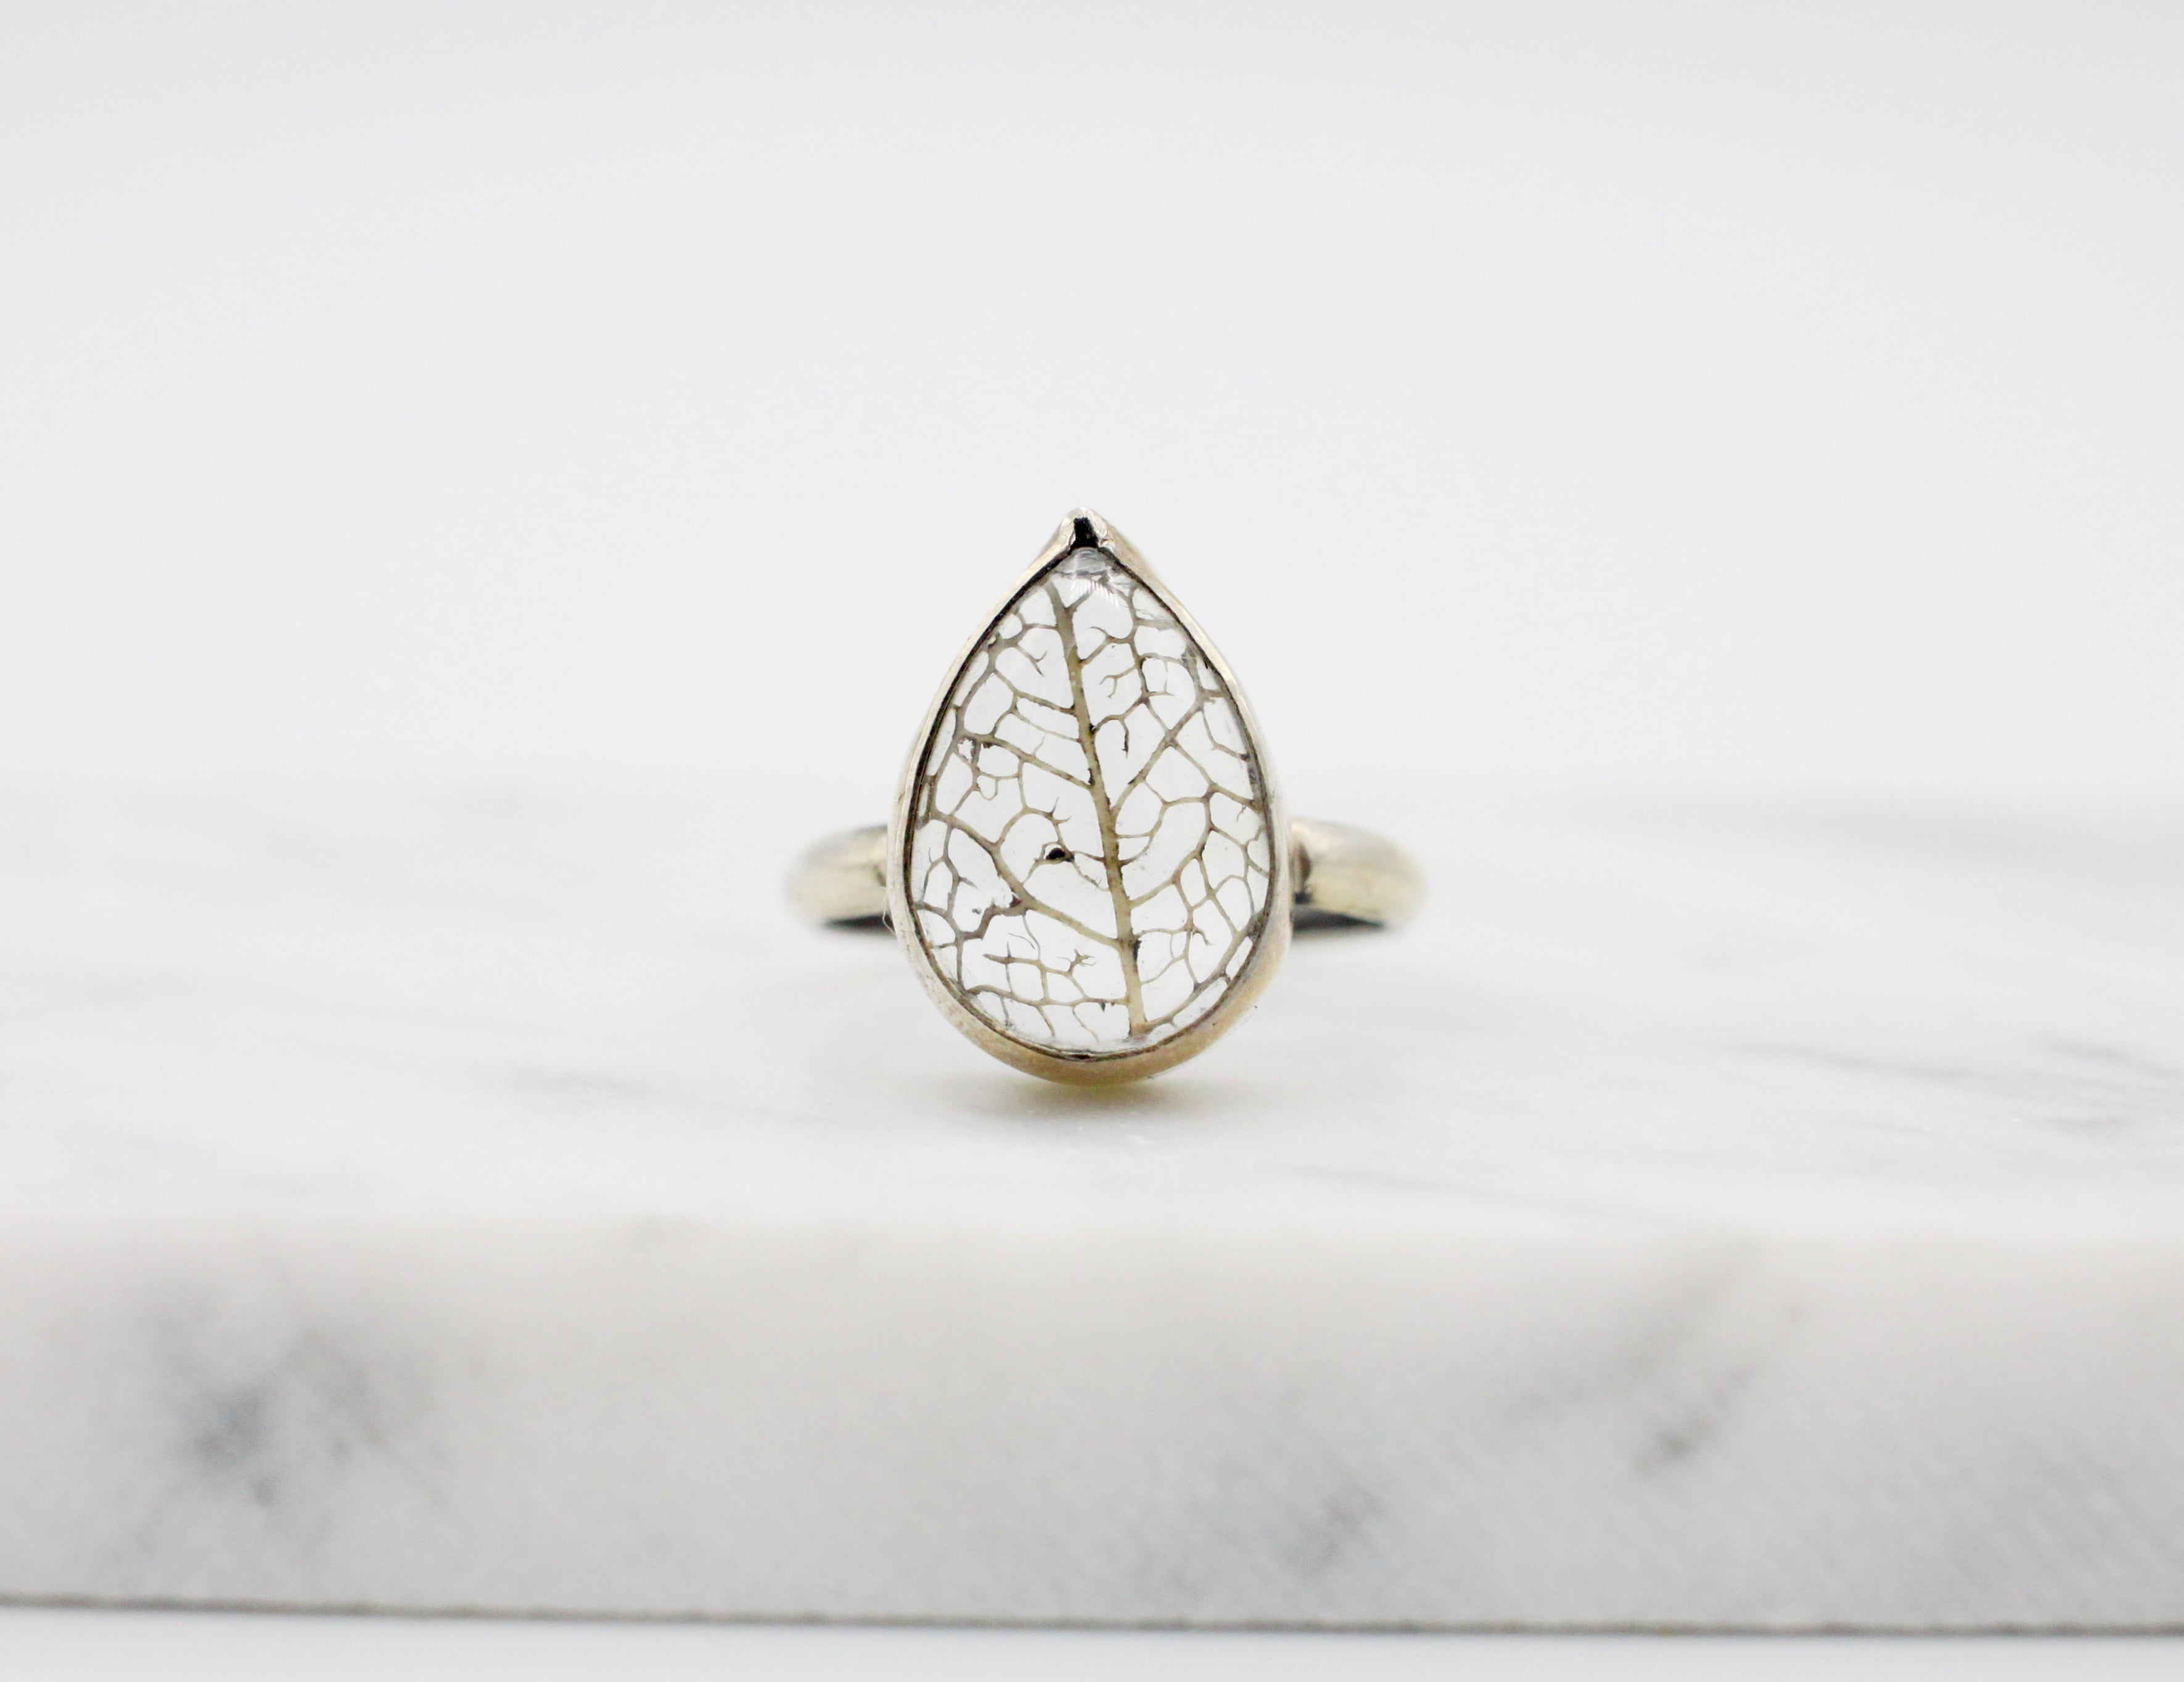 Small Pear Leaf Skeleton Pools of Light Ring - plain - size US 6.25